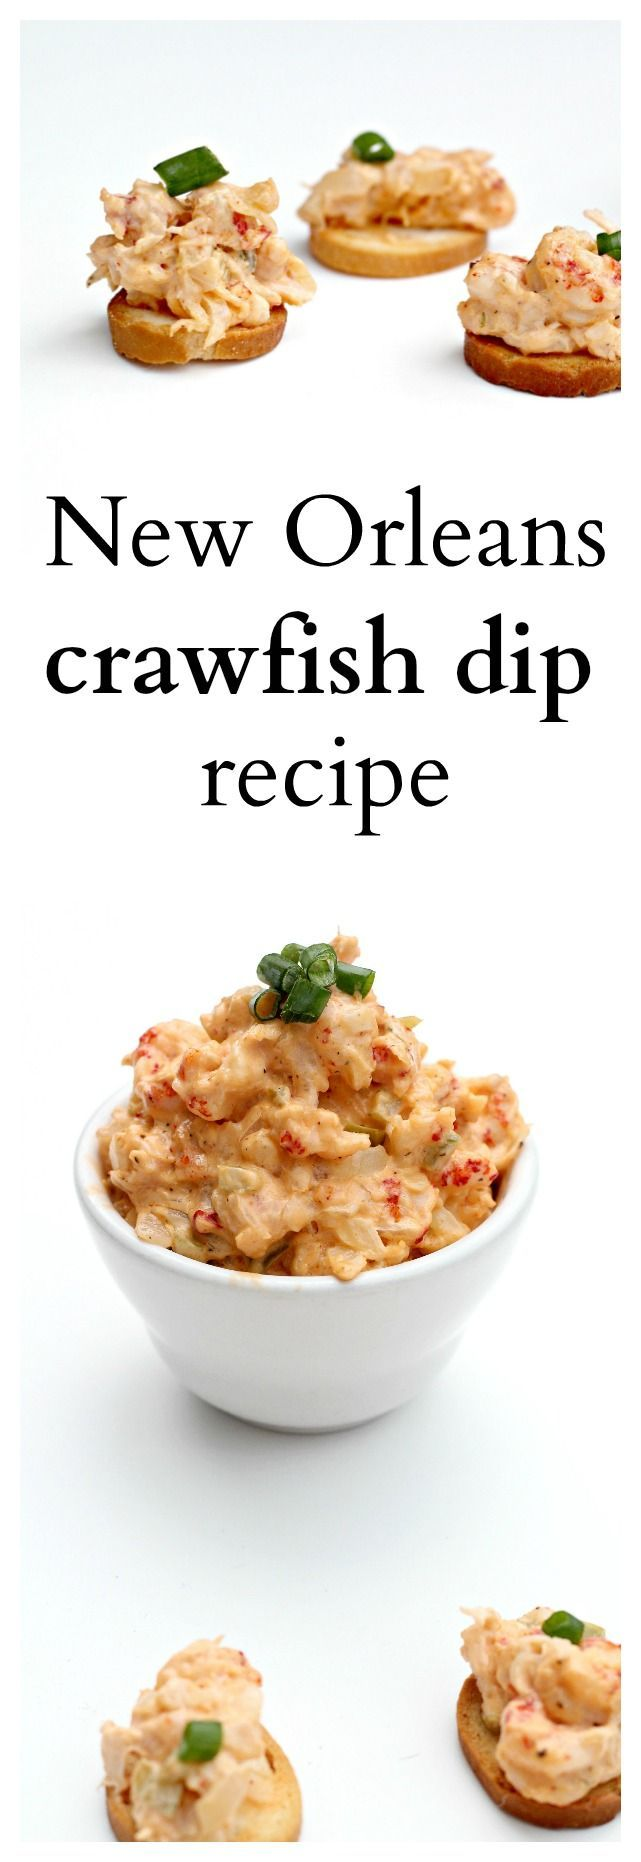 This crawfish dip recipe is addicting and really simple to make. Easy appetizer and perfect party dish!